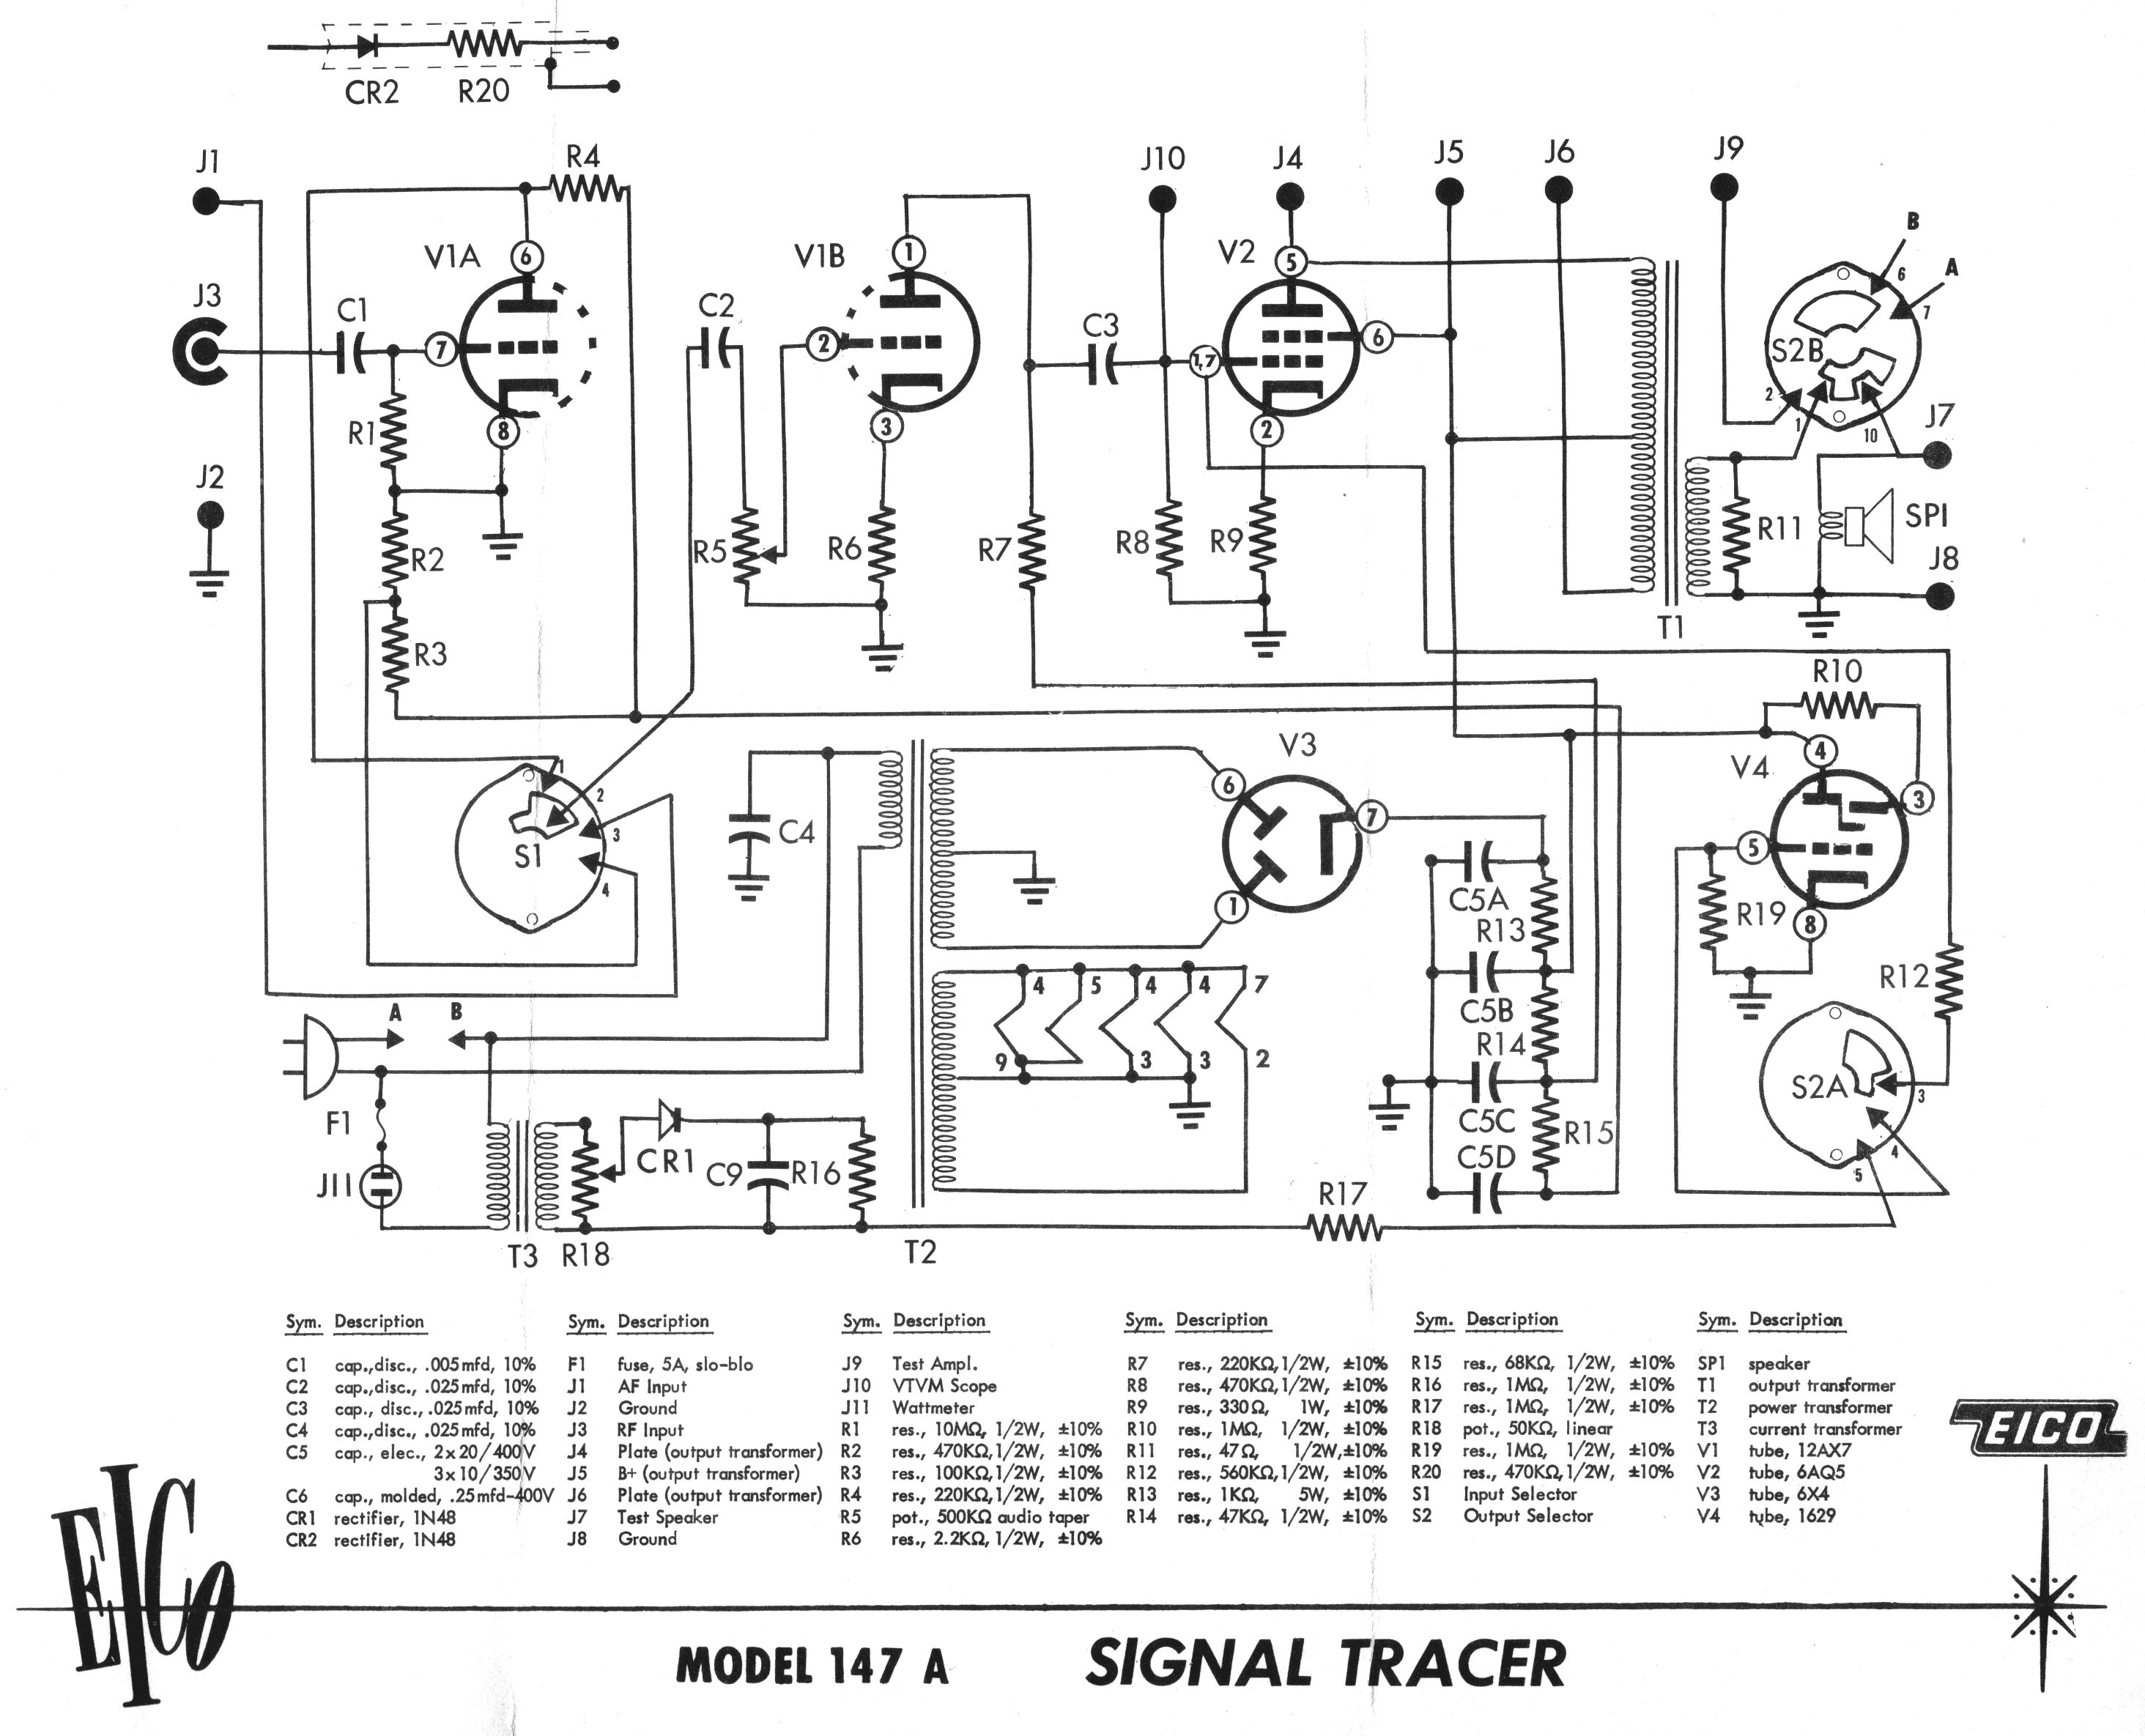 Eico Model 147a Signal Tracer